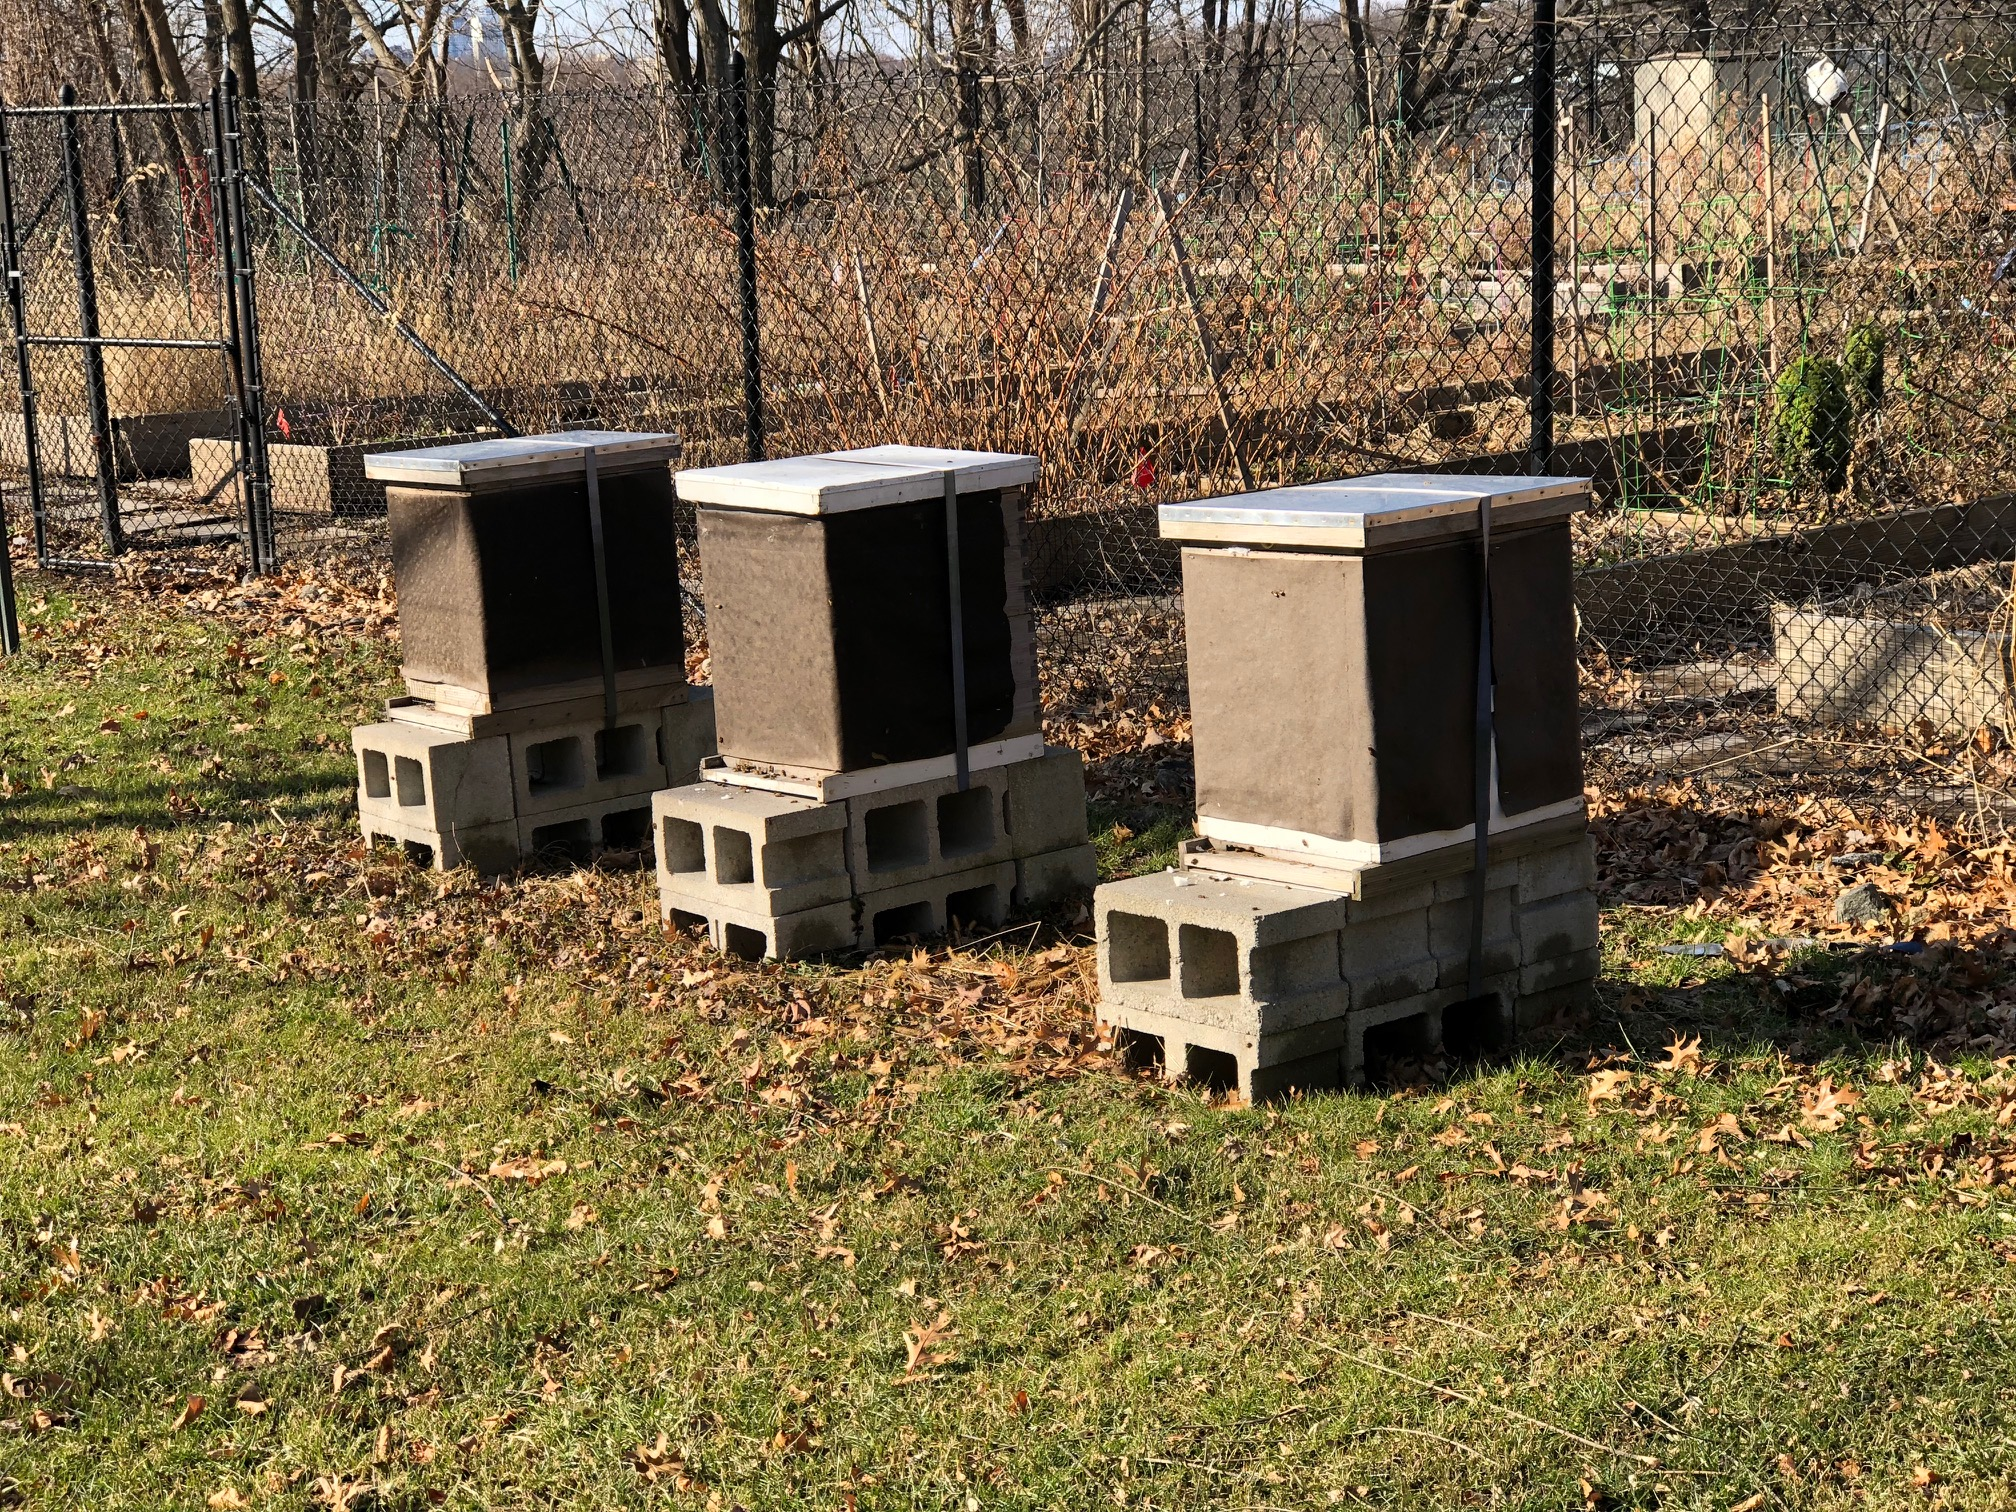 116dc7a375374 We are excited to announce our first meeting of the Hudson Valley Natural  Beekeepers group on Saturday, March 9th (rescheduled from March 2nd due to  snow).